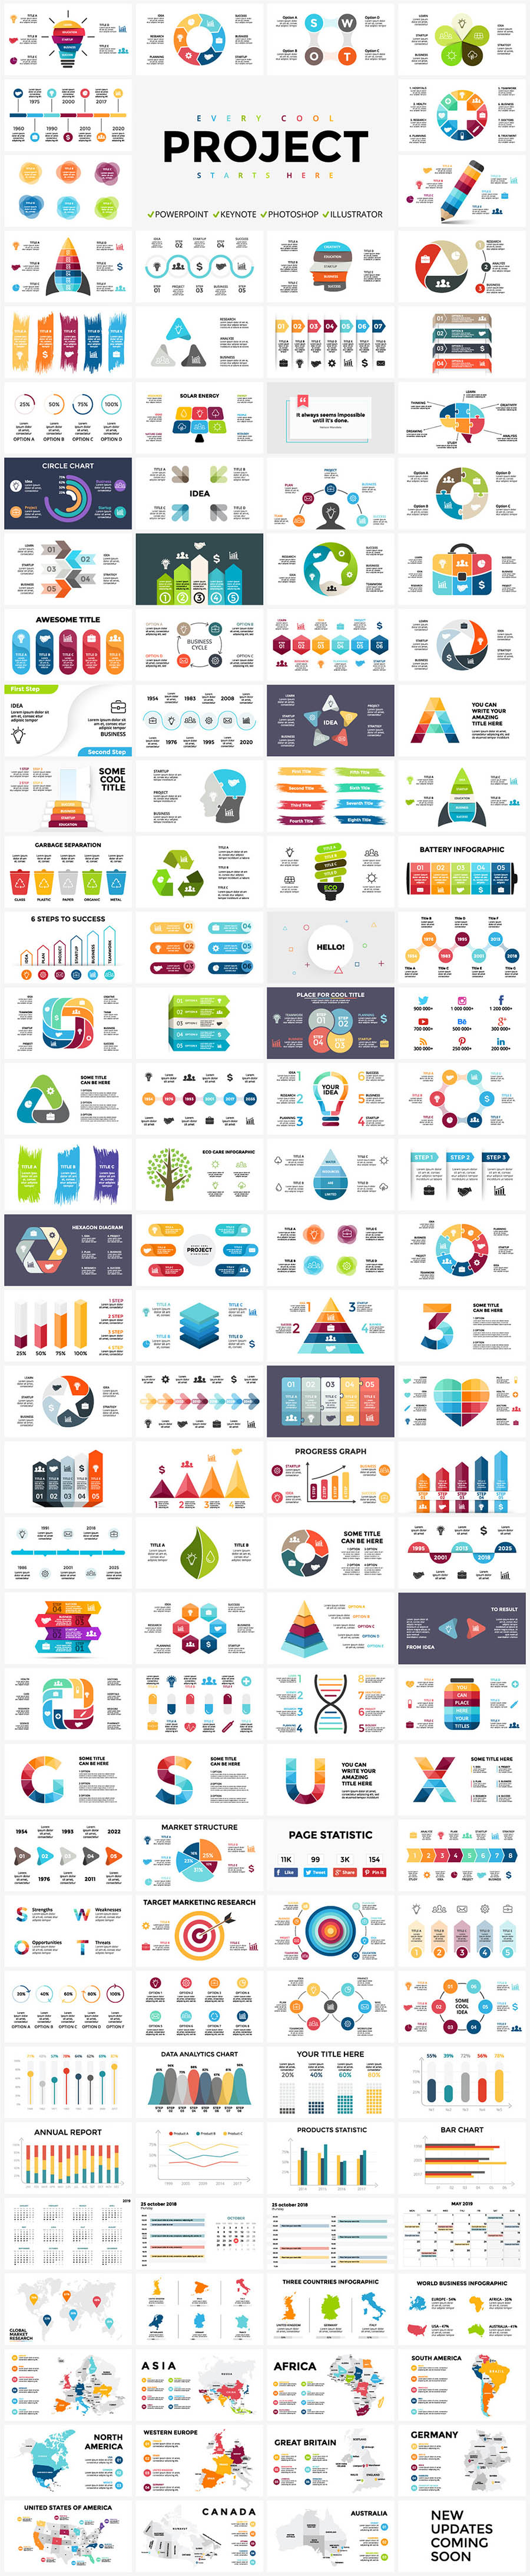 Cool Infographics in 2020. Best Infographics Bundle: 1500 items - $29 - 01 PROJECT